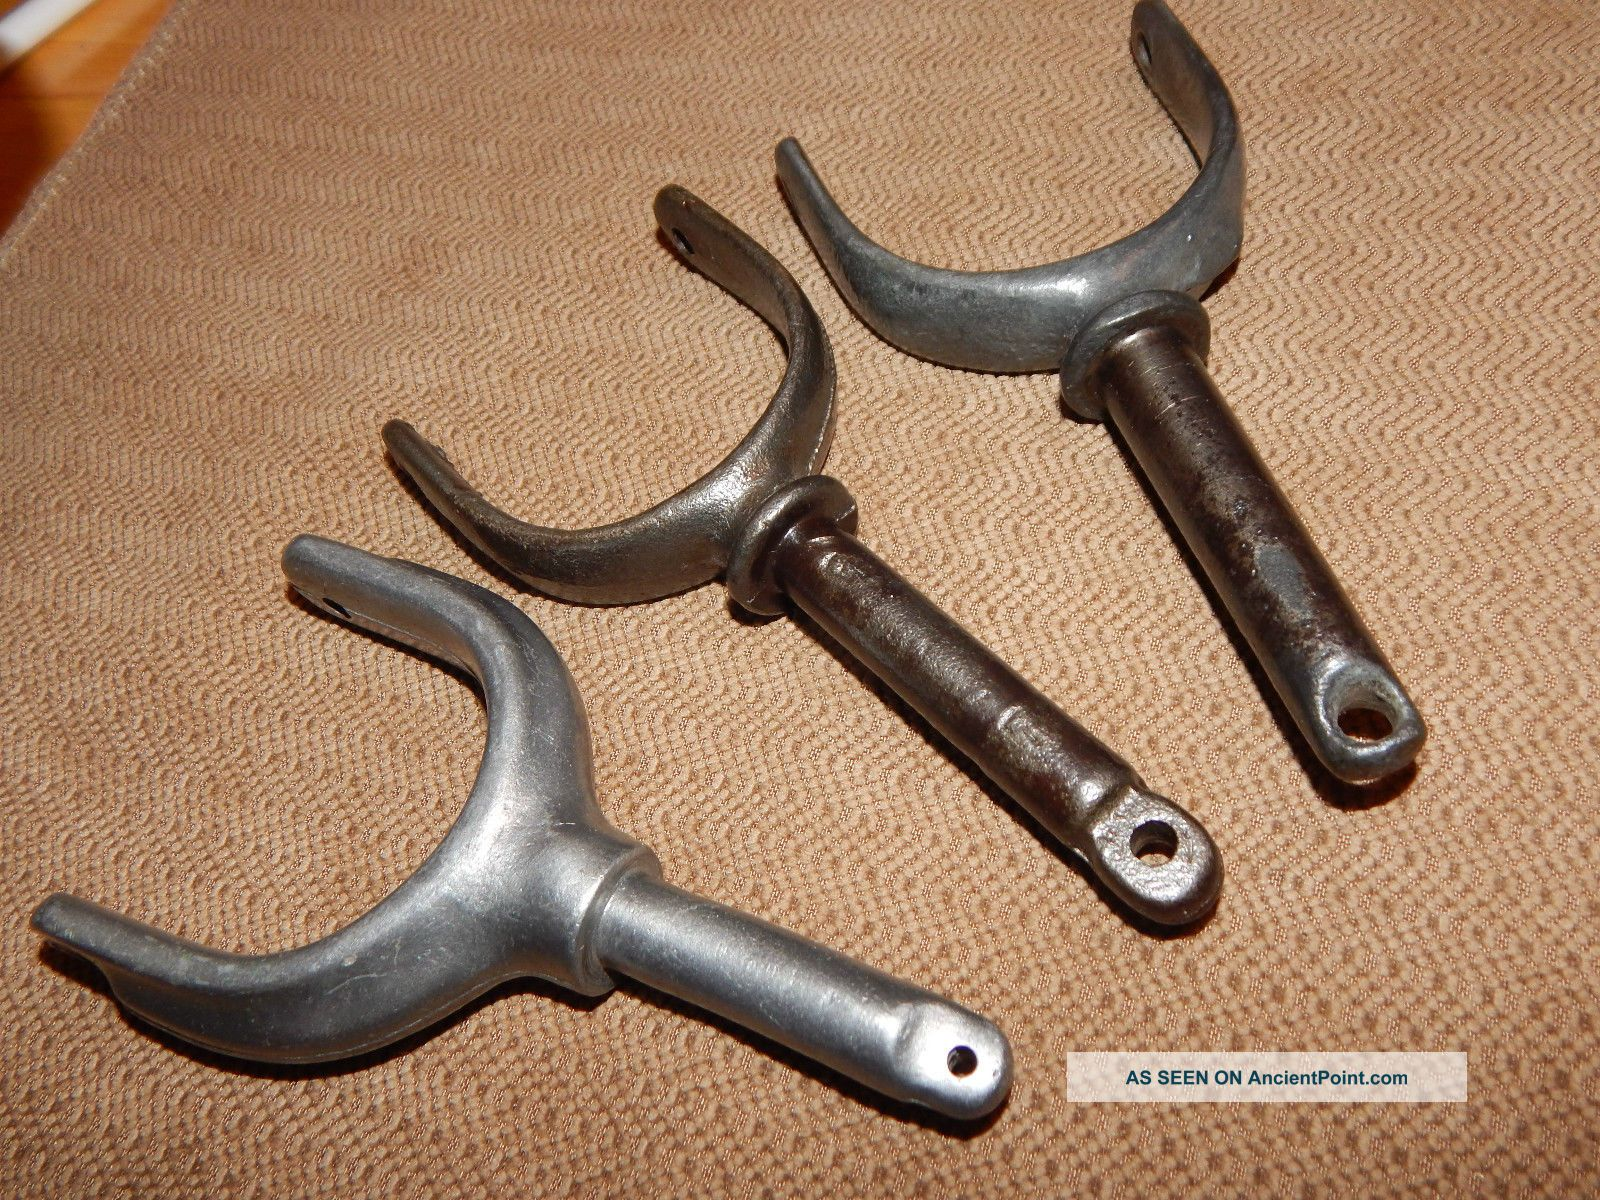 Group Of 3 Vintage Oar Locks For Row Boat Other photo